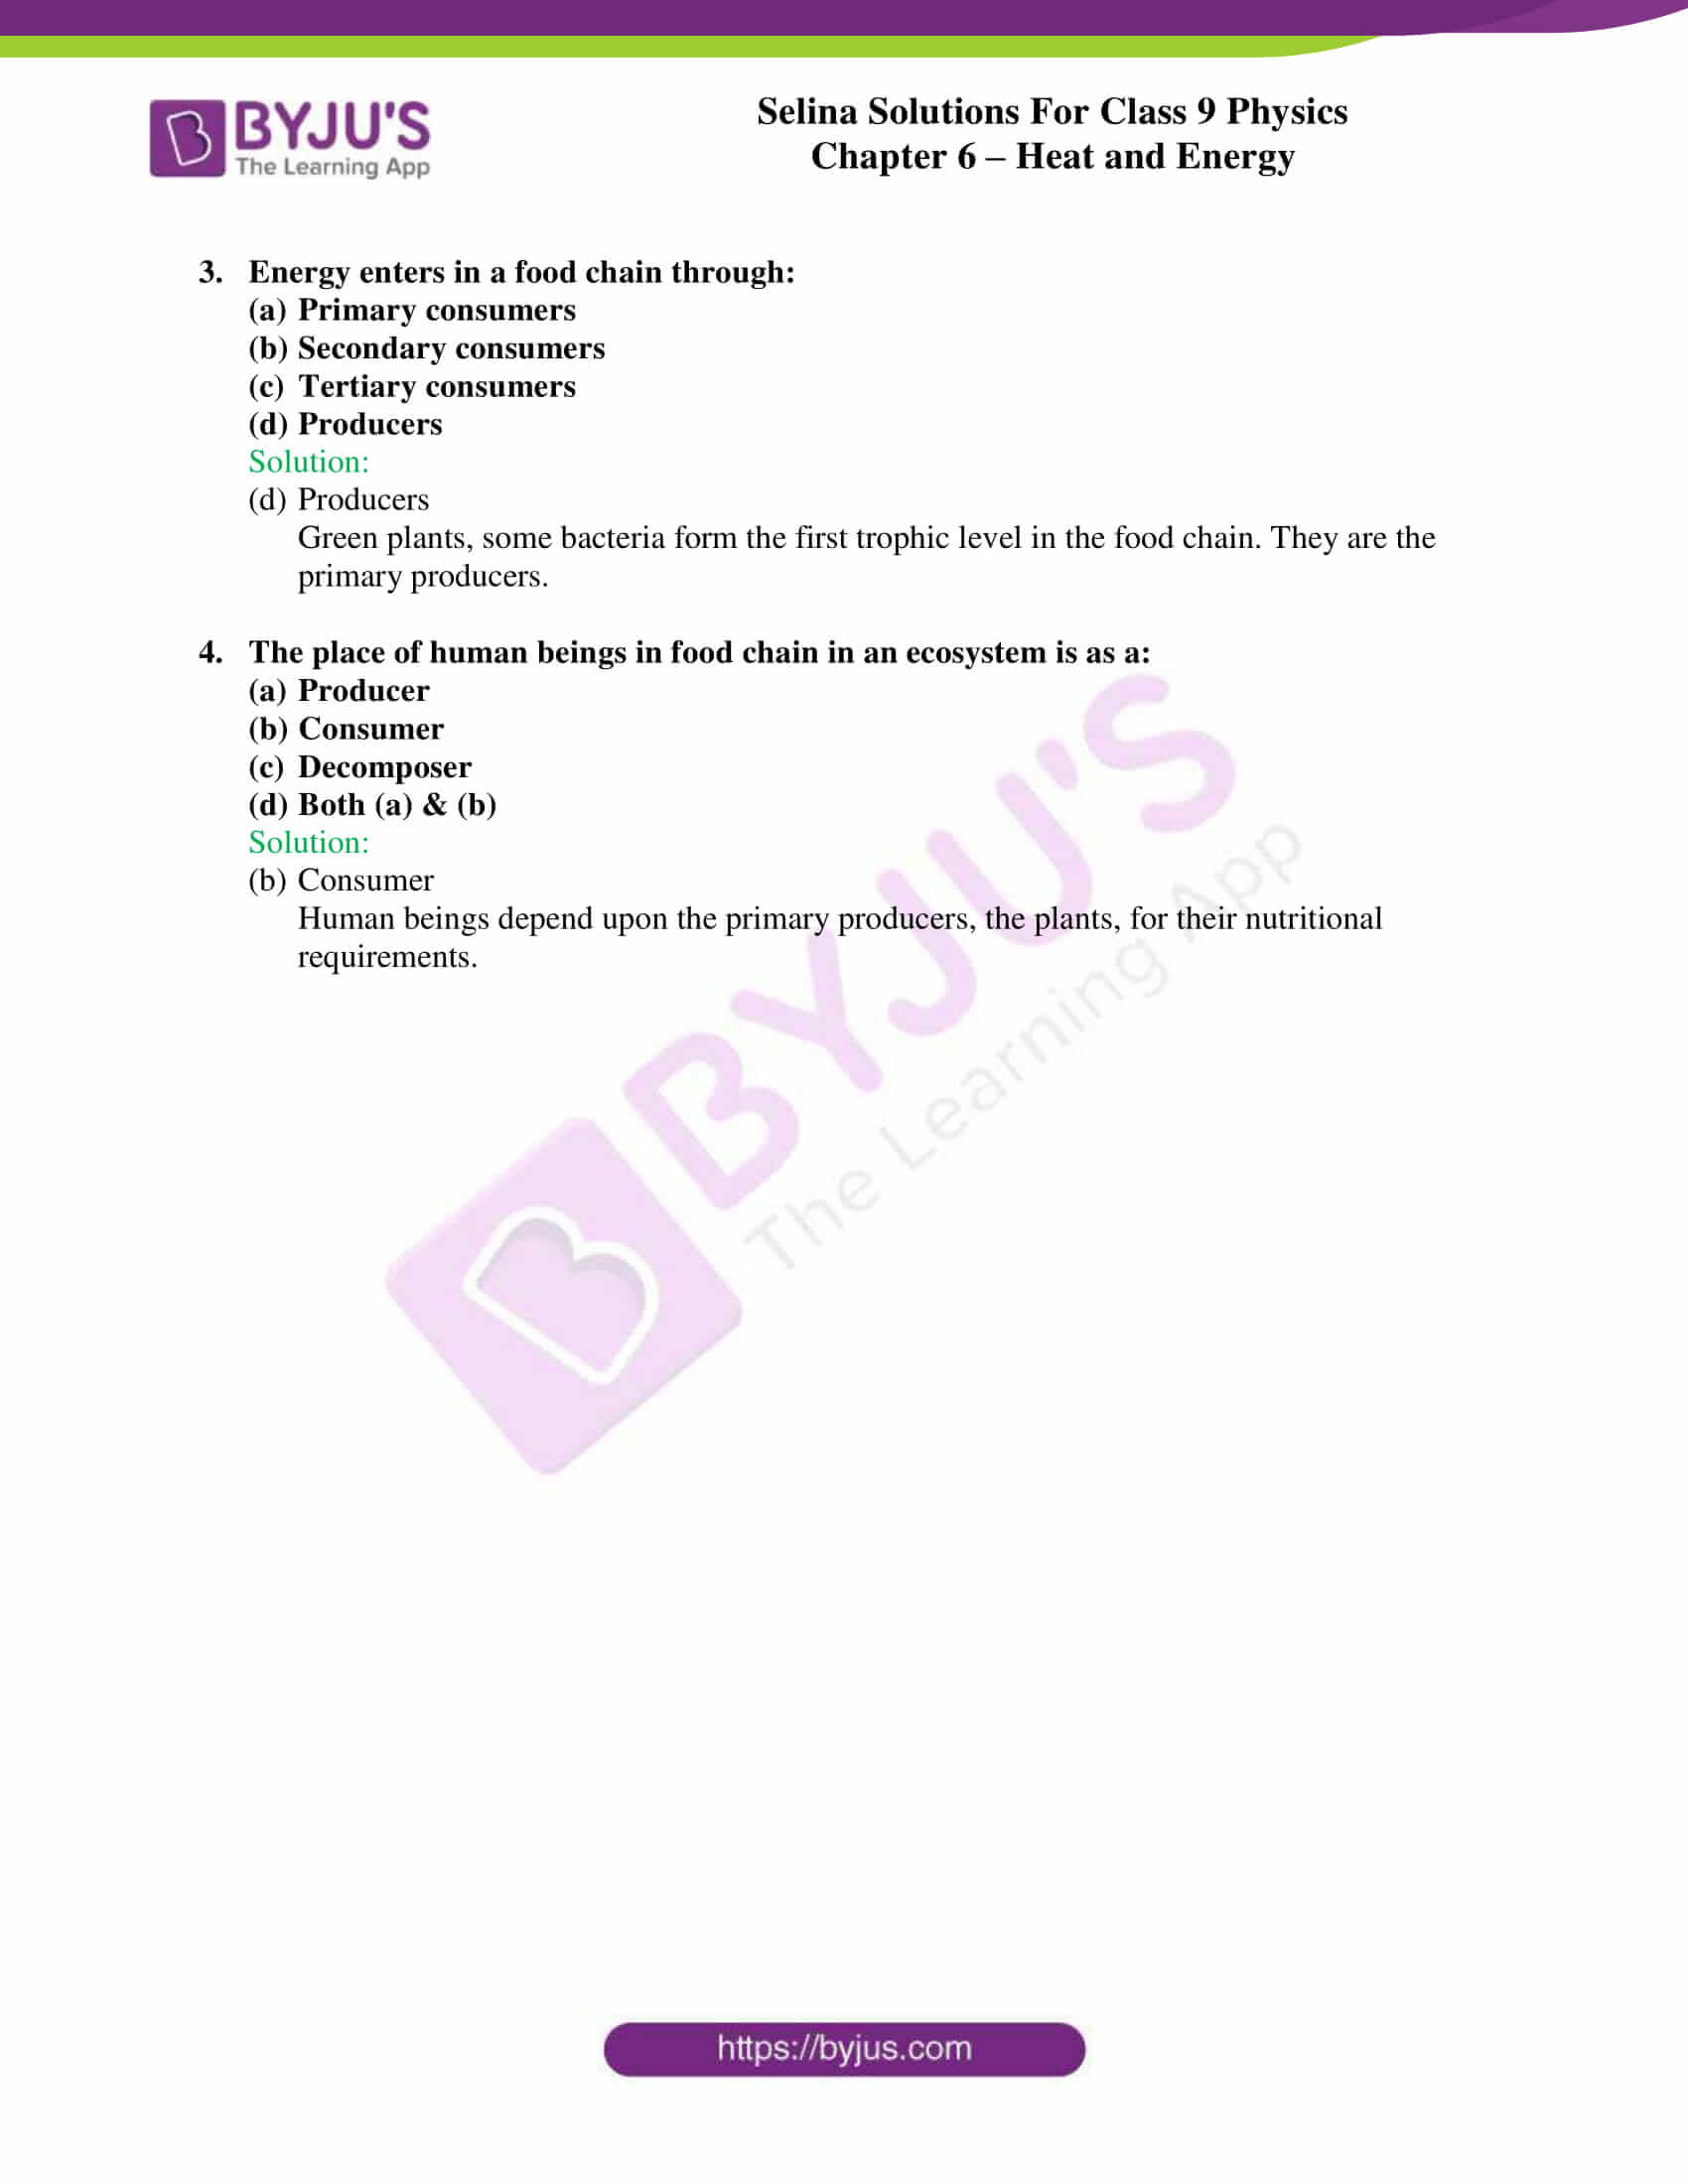 selina solutions class 9 physics chapter 6 Heat and Energy part 13